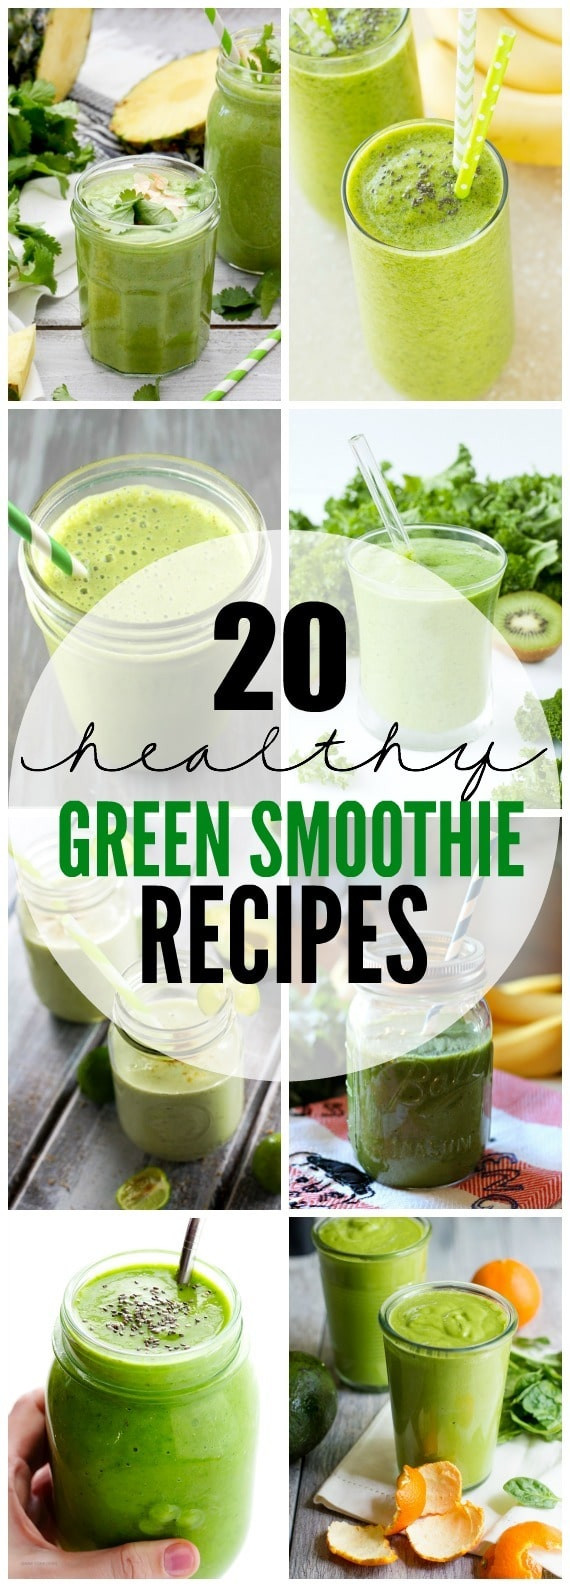 Simple Healthy Smoothie Recipes  20 Healthy Green Smoothie Recipes Yummy Healthy Easy